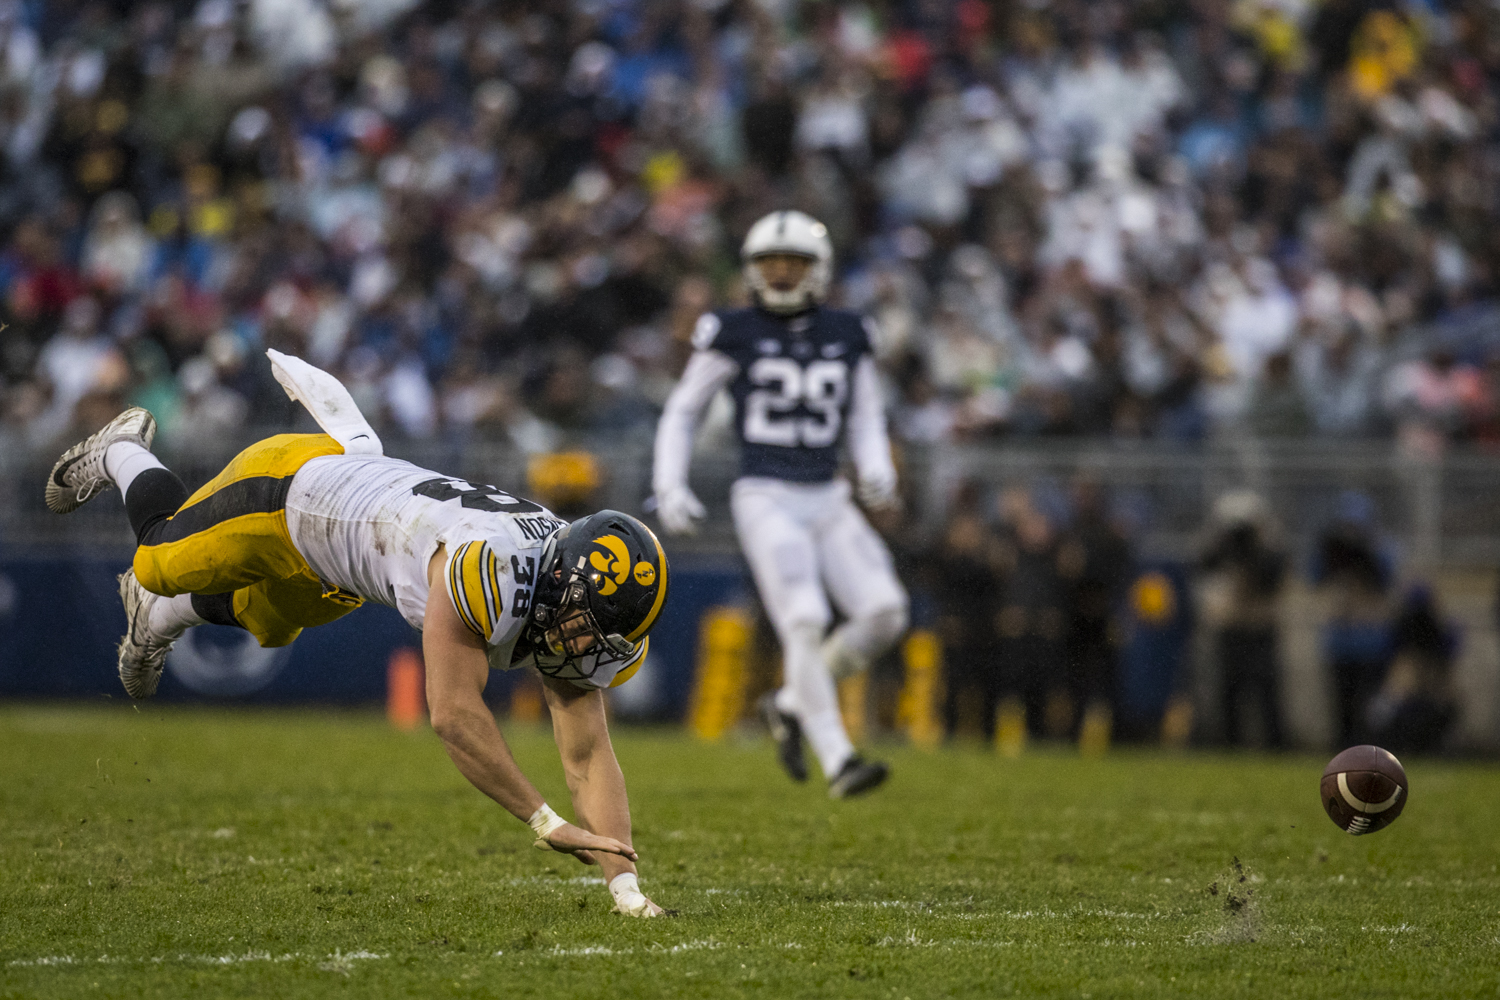 Iowa tight end T.J. Hockenson trips trying to catch up to an overthrown pass during Iowa's game against Penn State at Beaver Stadium on Saturday, Oct. 27, 2018. The Nittany Lions defeated the Hawkeyes 30-24.